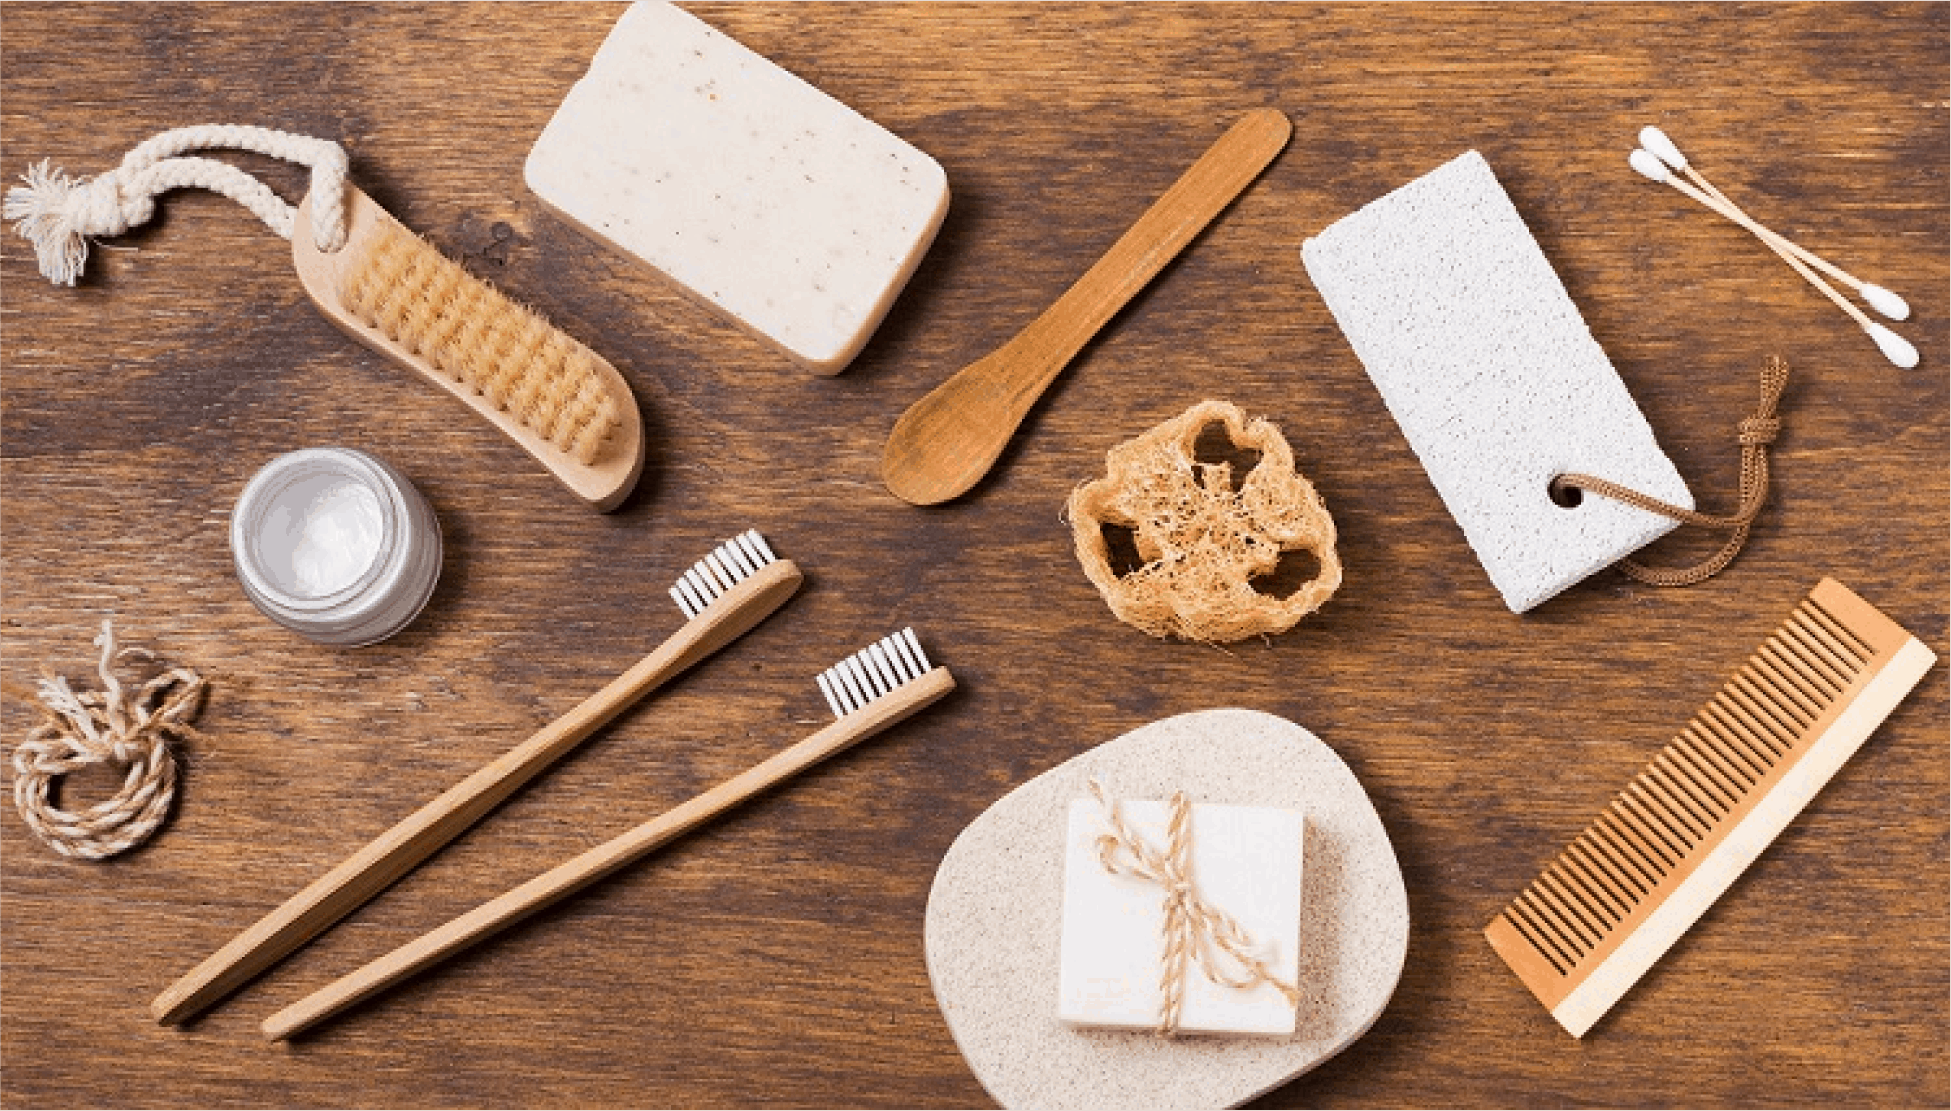 An Assortment of bathing accessories, Toothbrushes, comb and sponges. @300x